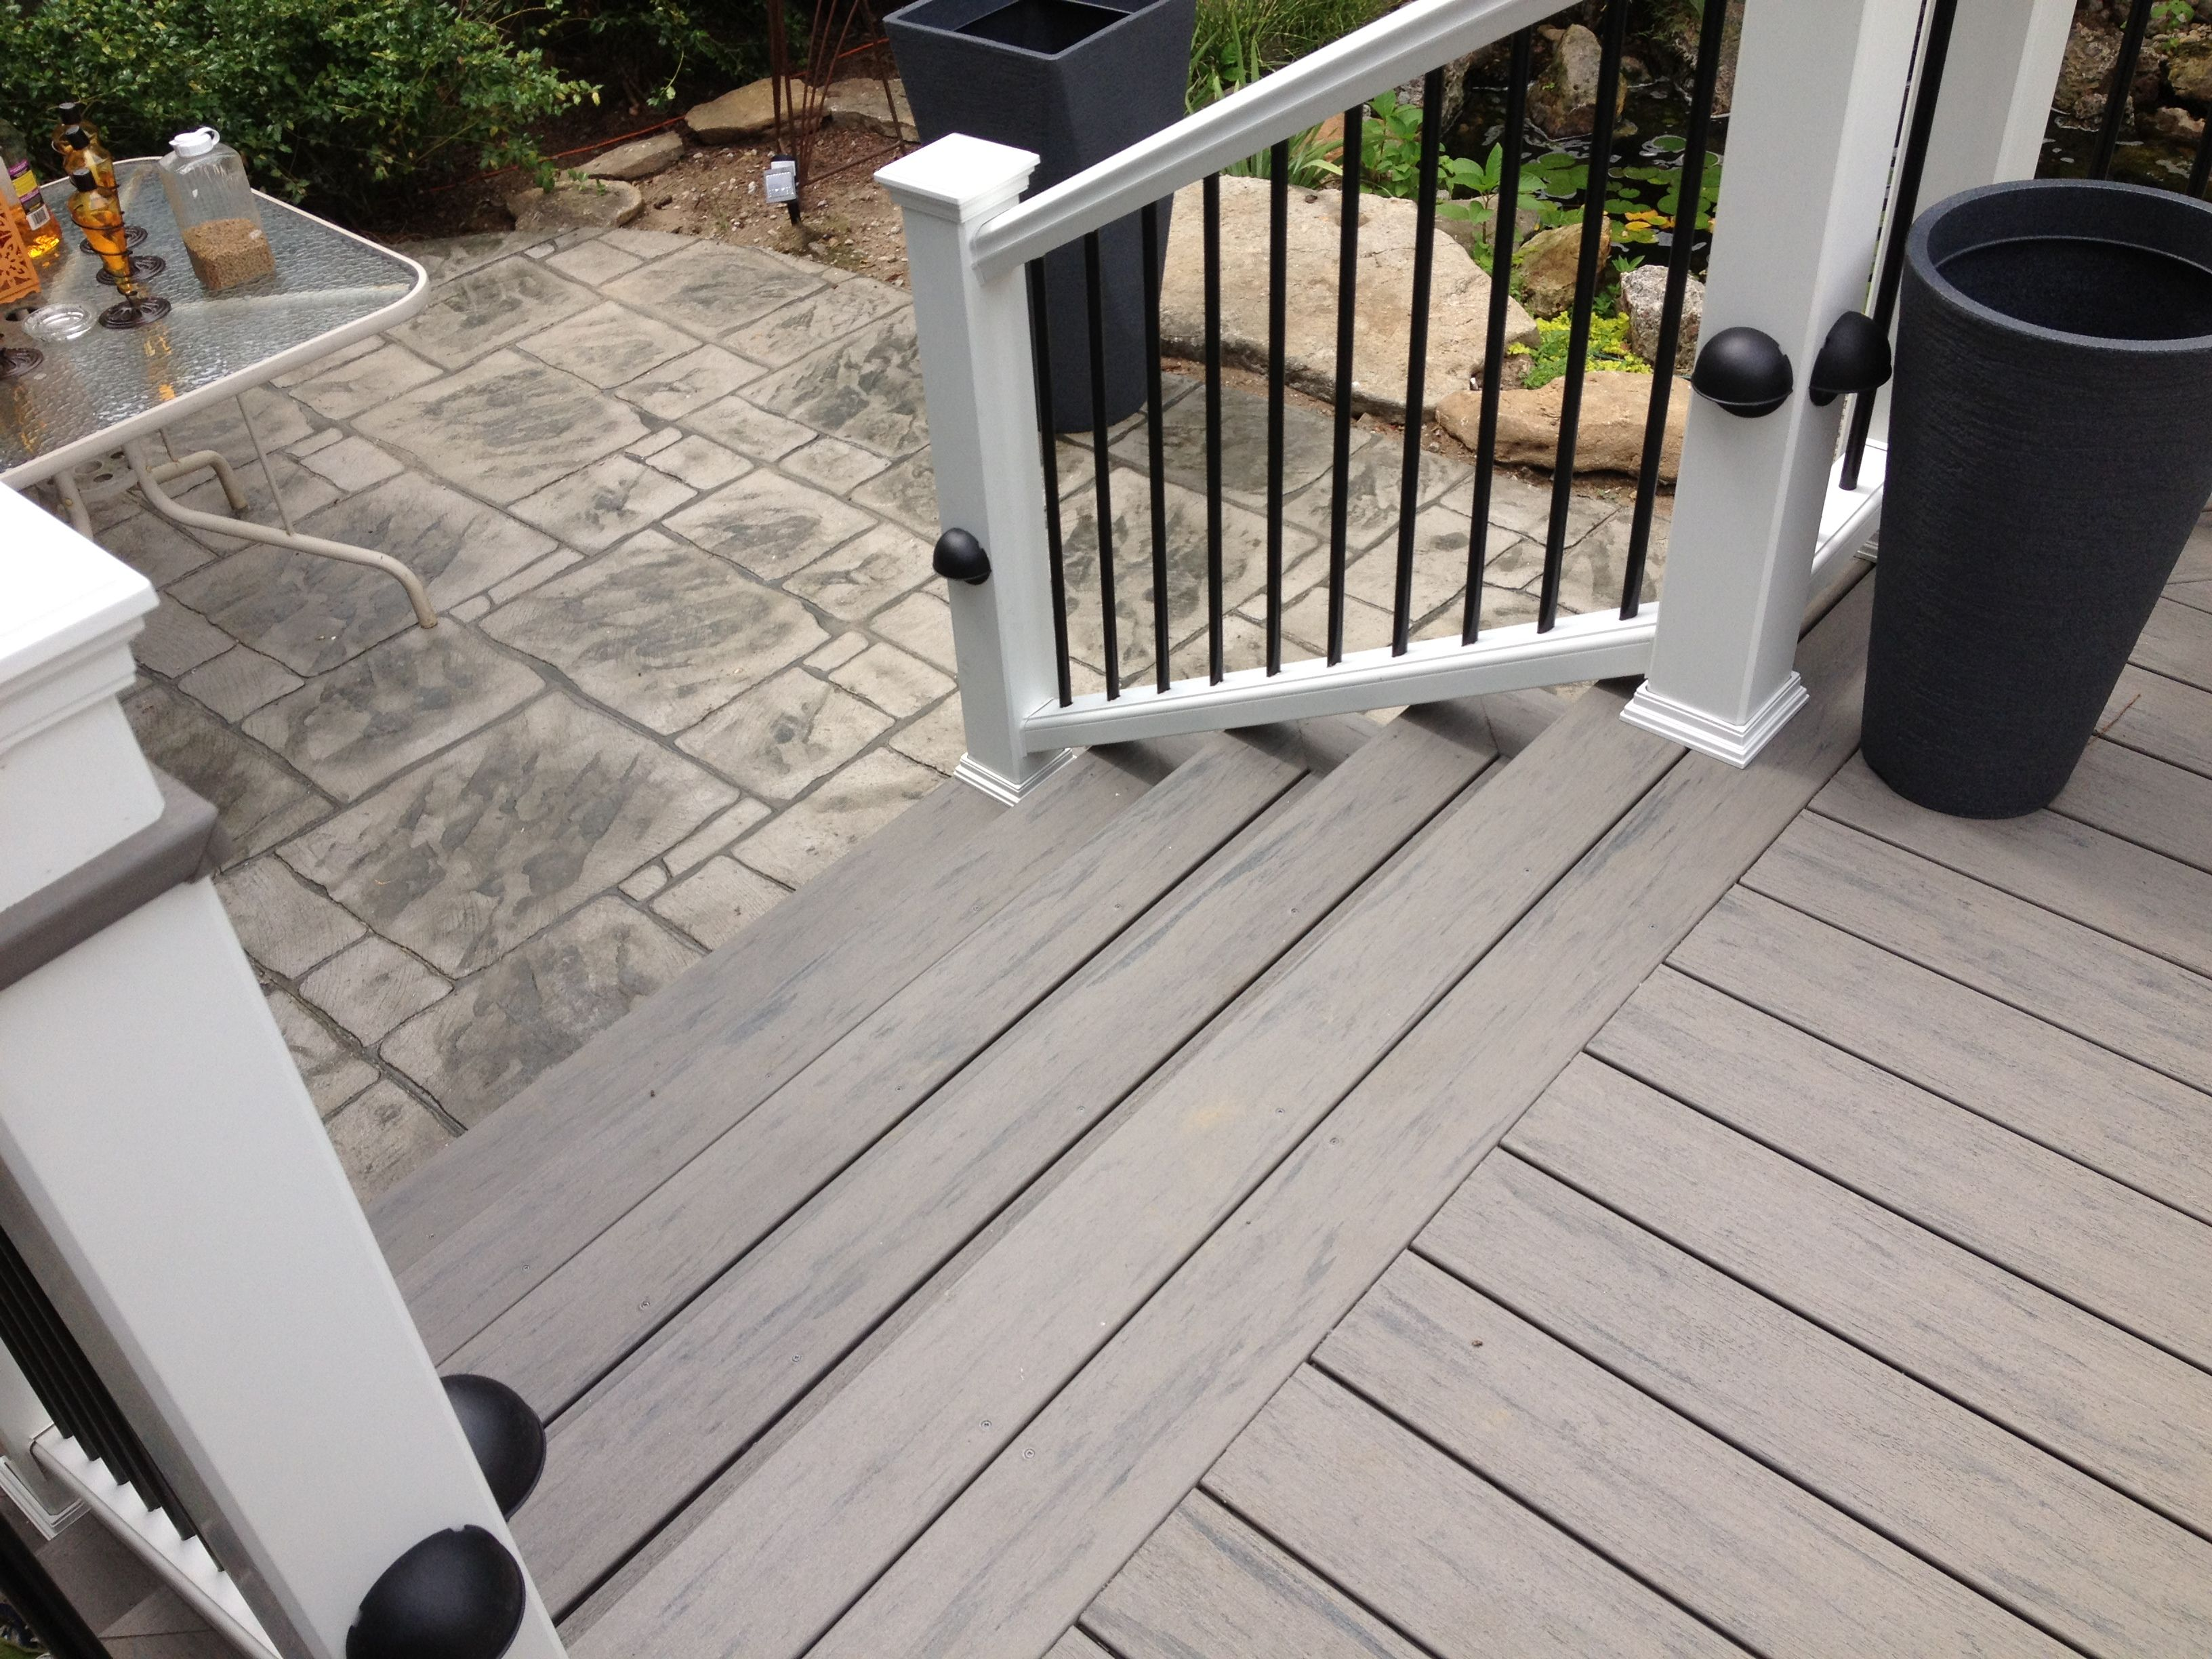 Double picture framed decking and stamped concrete patio Terrain decking